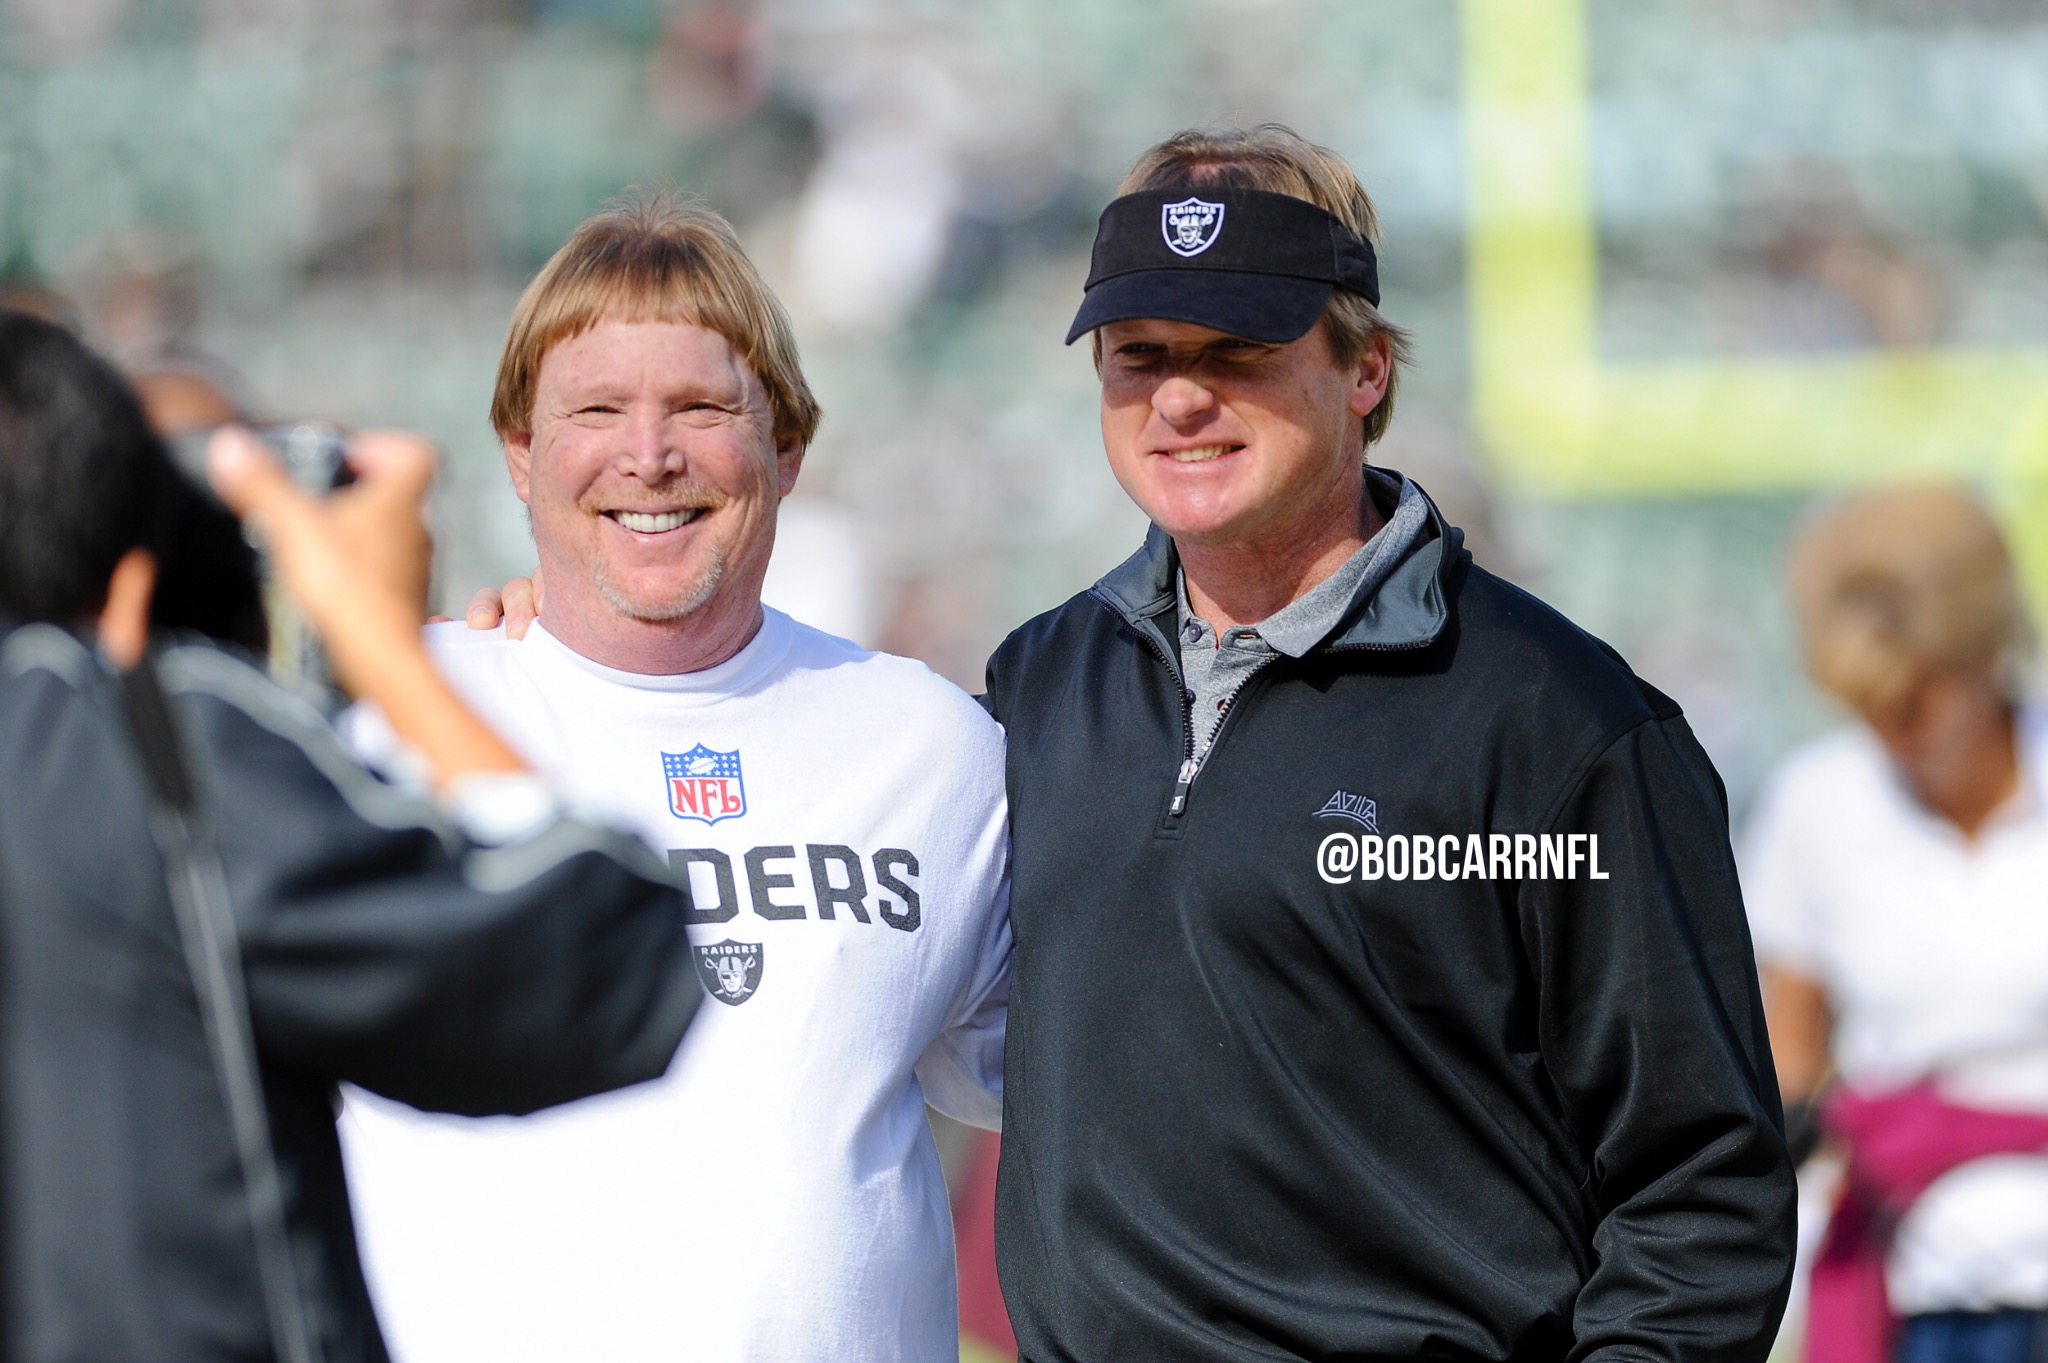 Tracking Jon Gruden's coaching staff